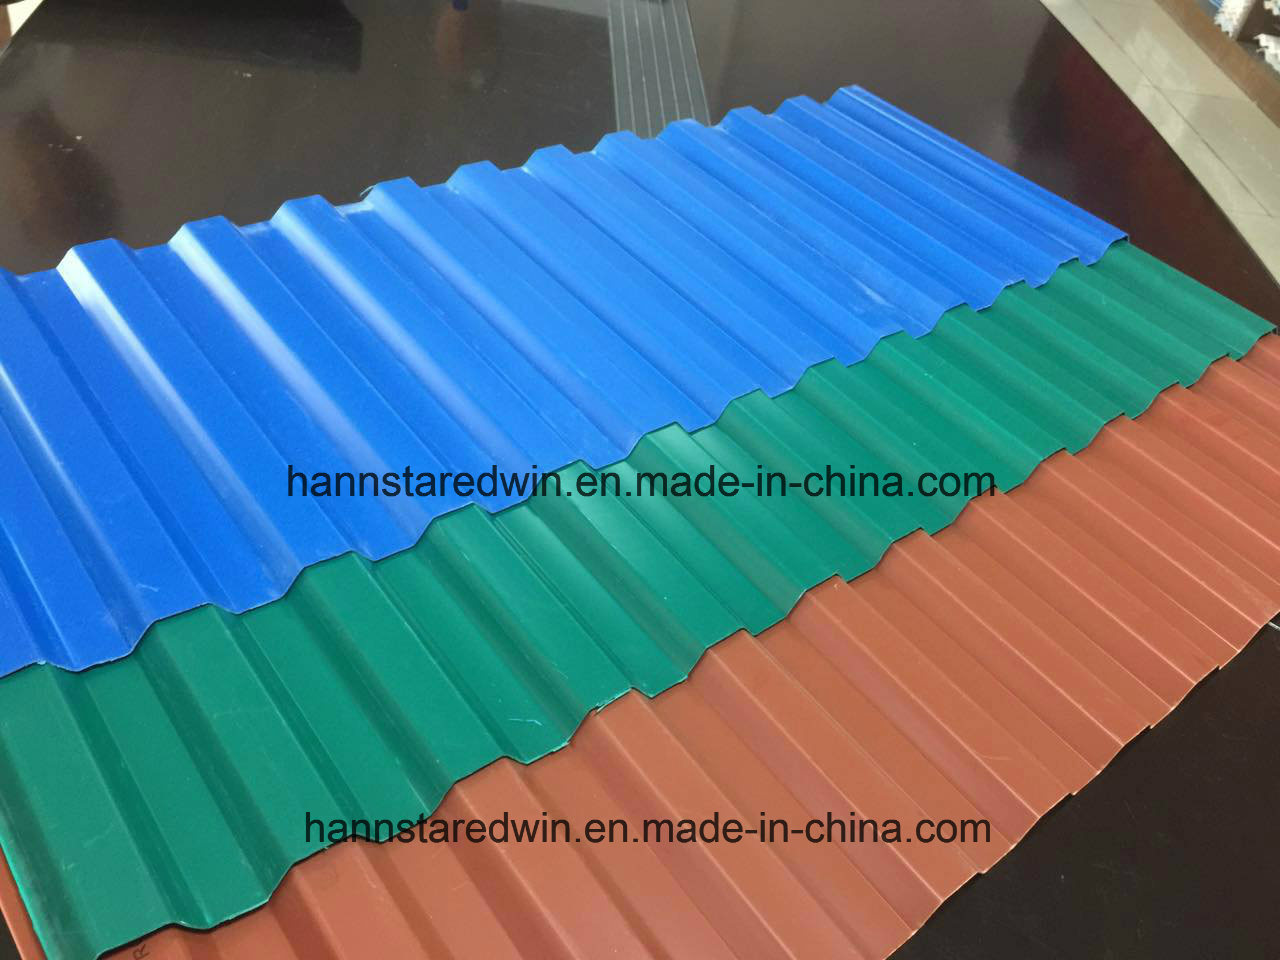 Factory Roofing Sound Insulated Corrosion Resistant PVC Roofing Material  Roofing Tiles Shingles